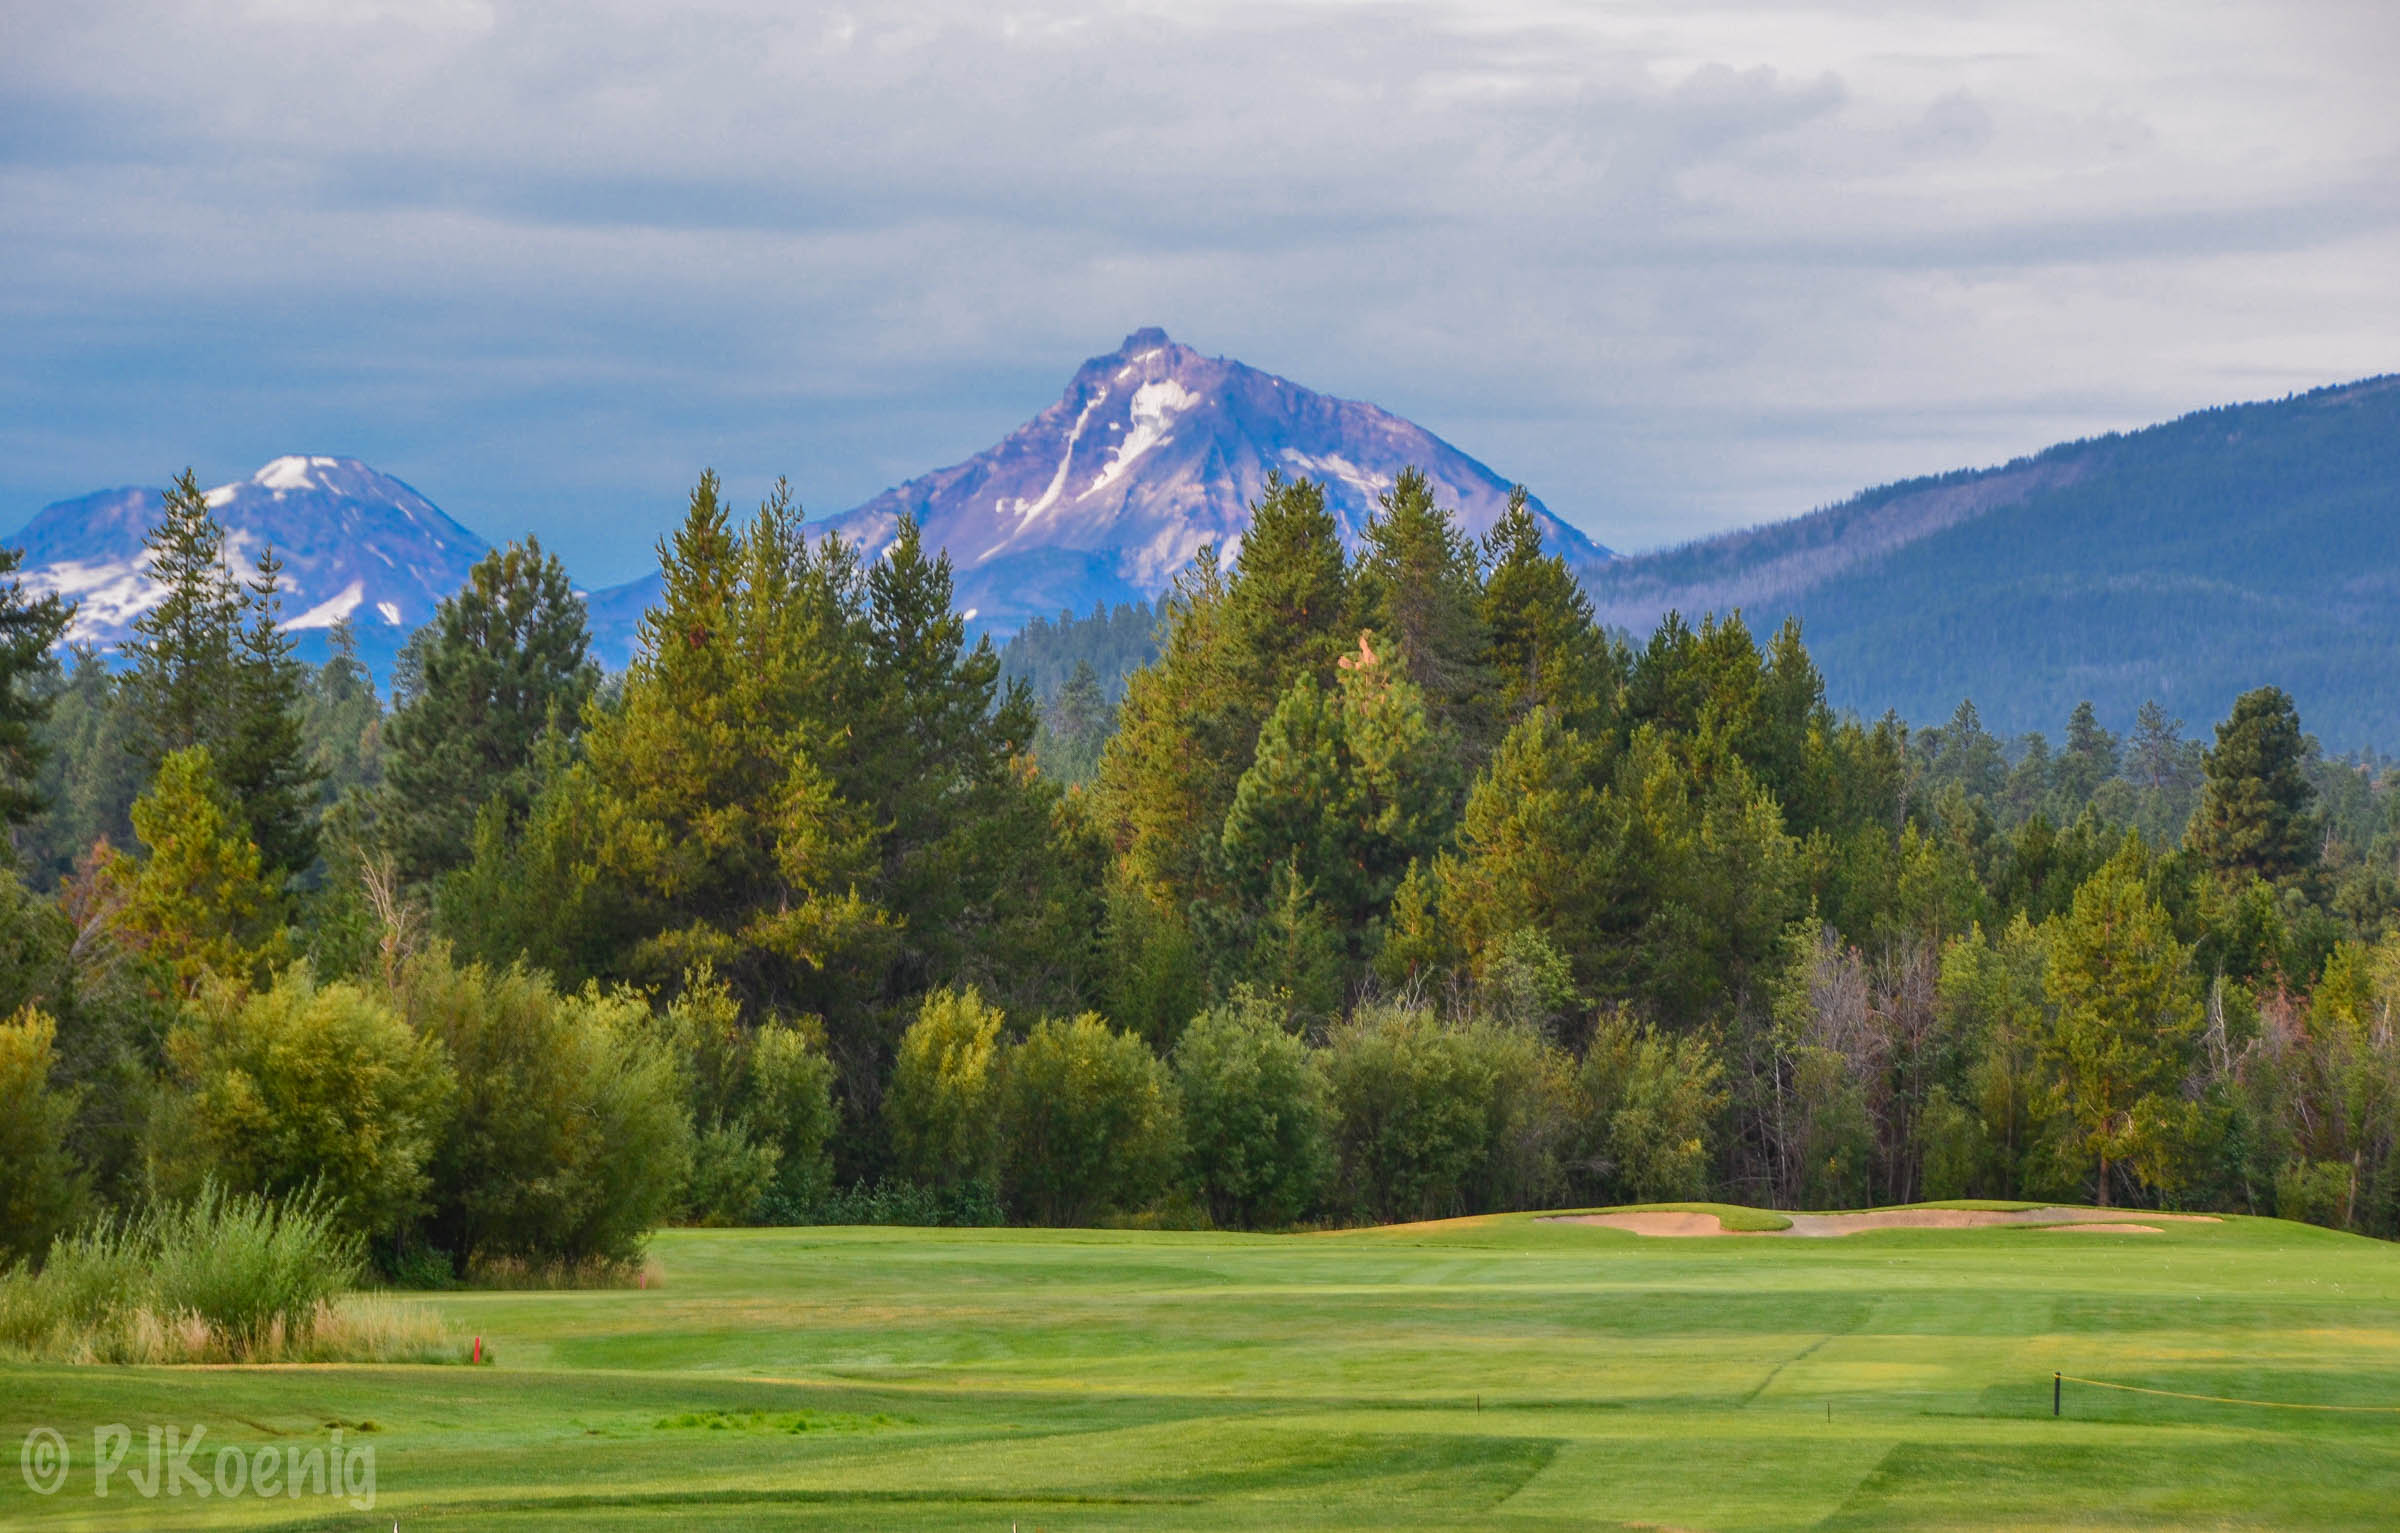 The view from the 10th tee at Black Butte Ranch